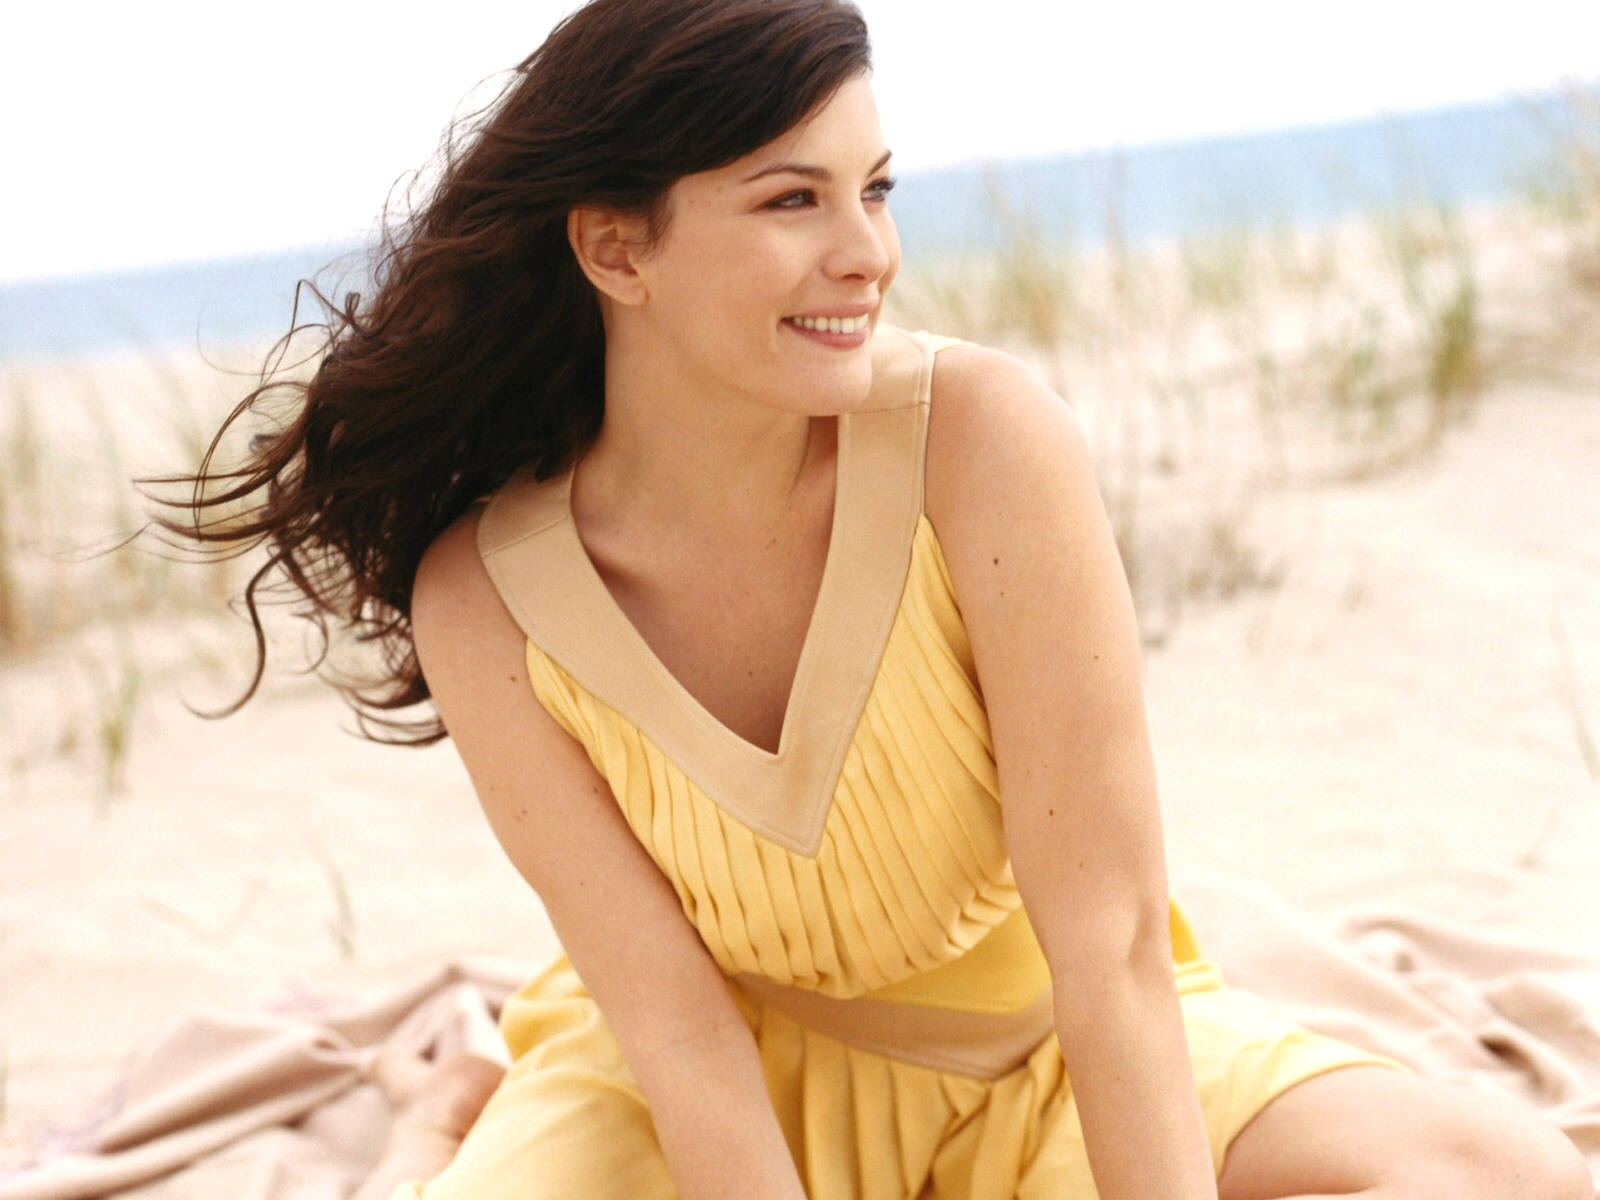 liv tyler smile wallpaper pictures 53110